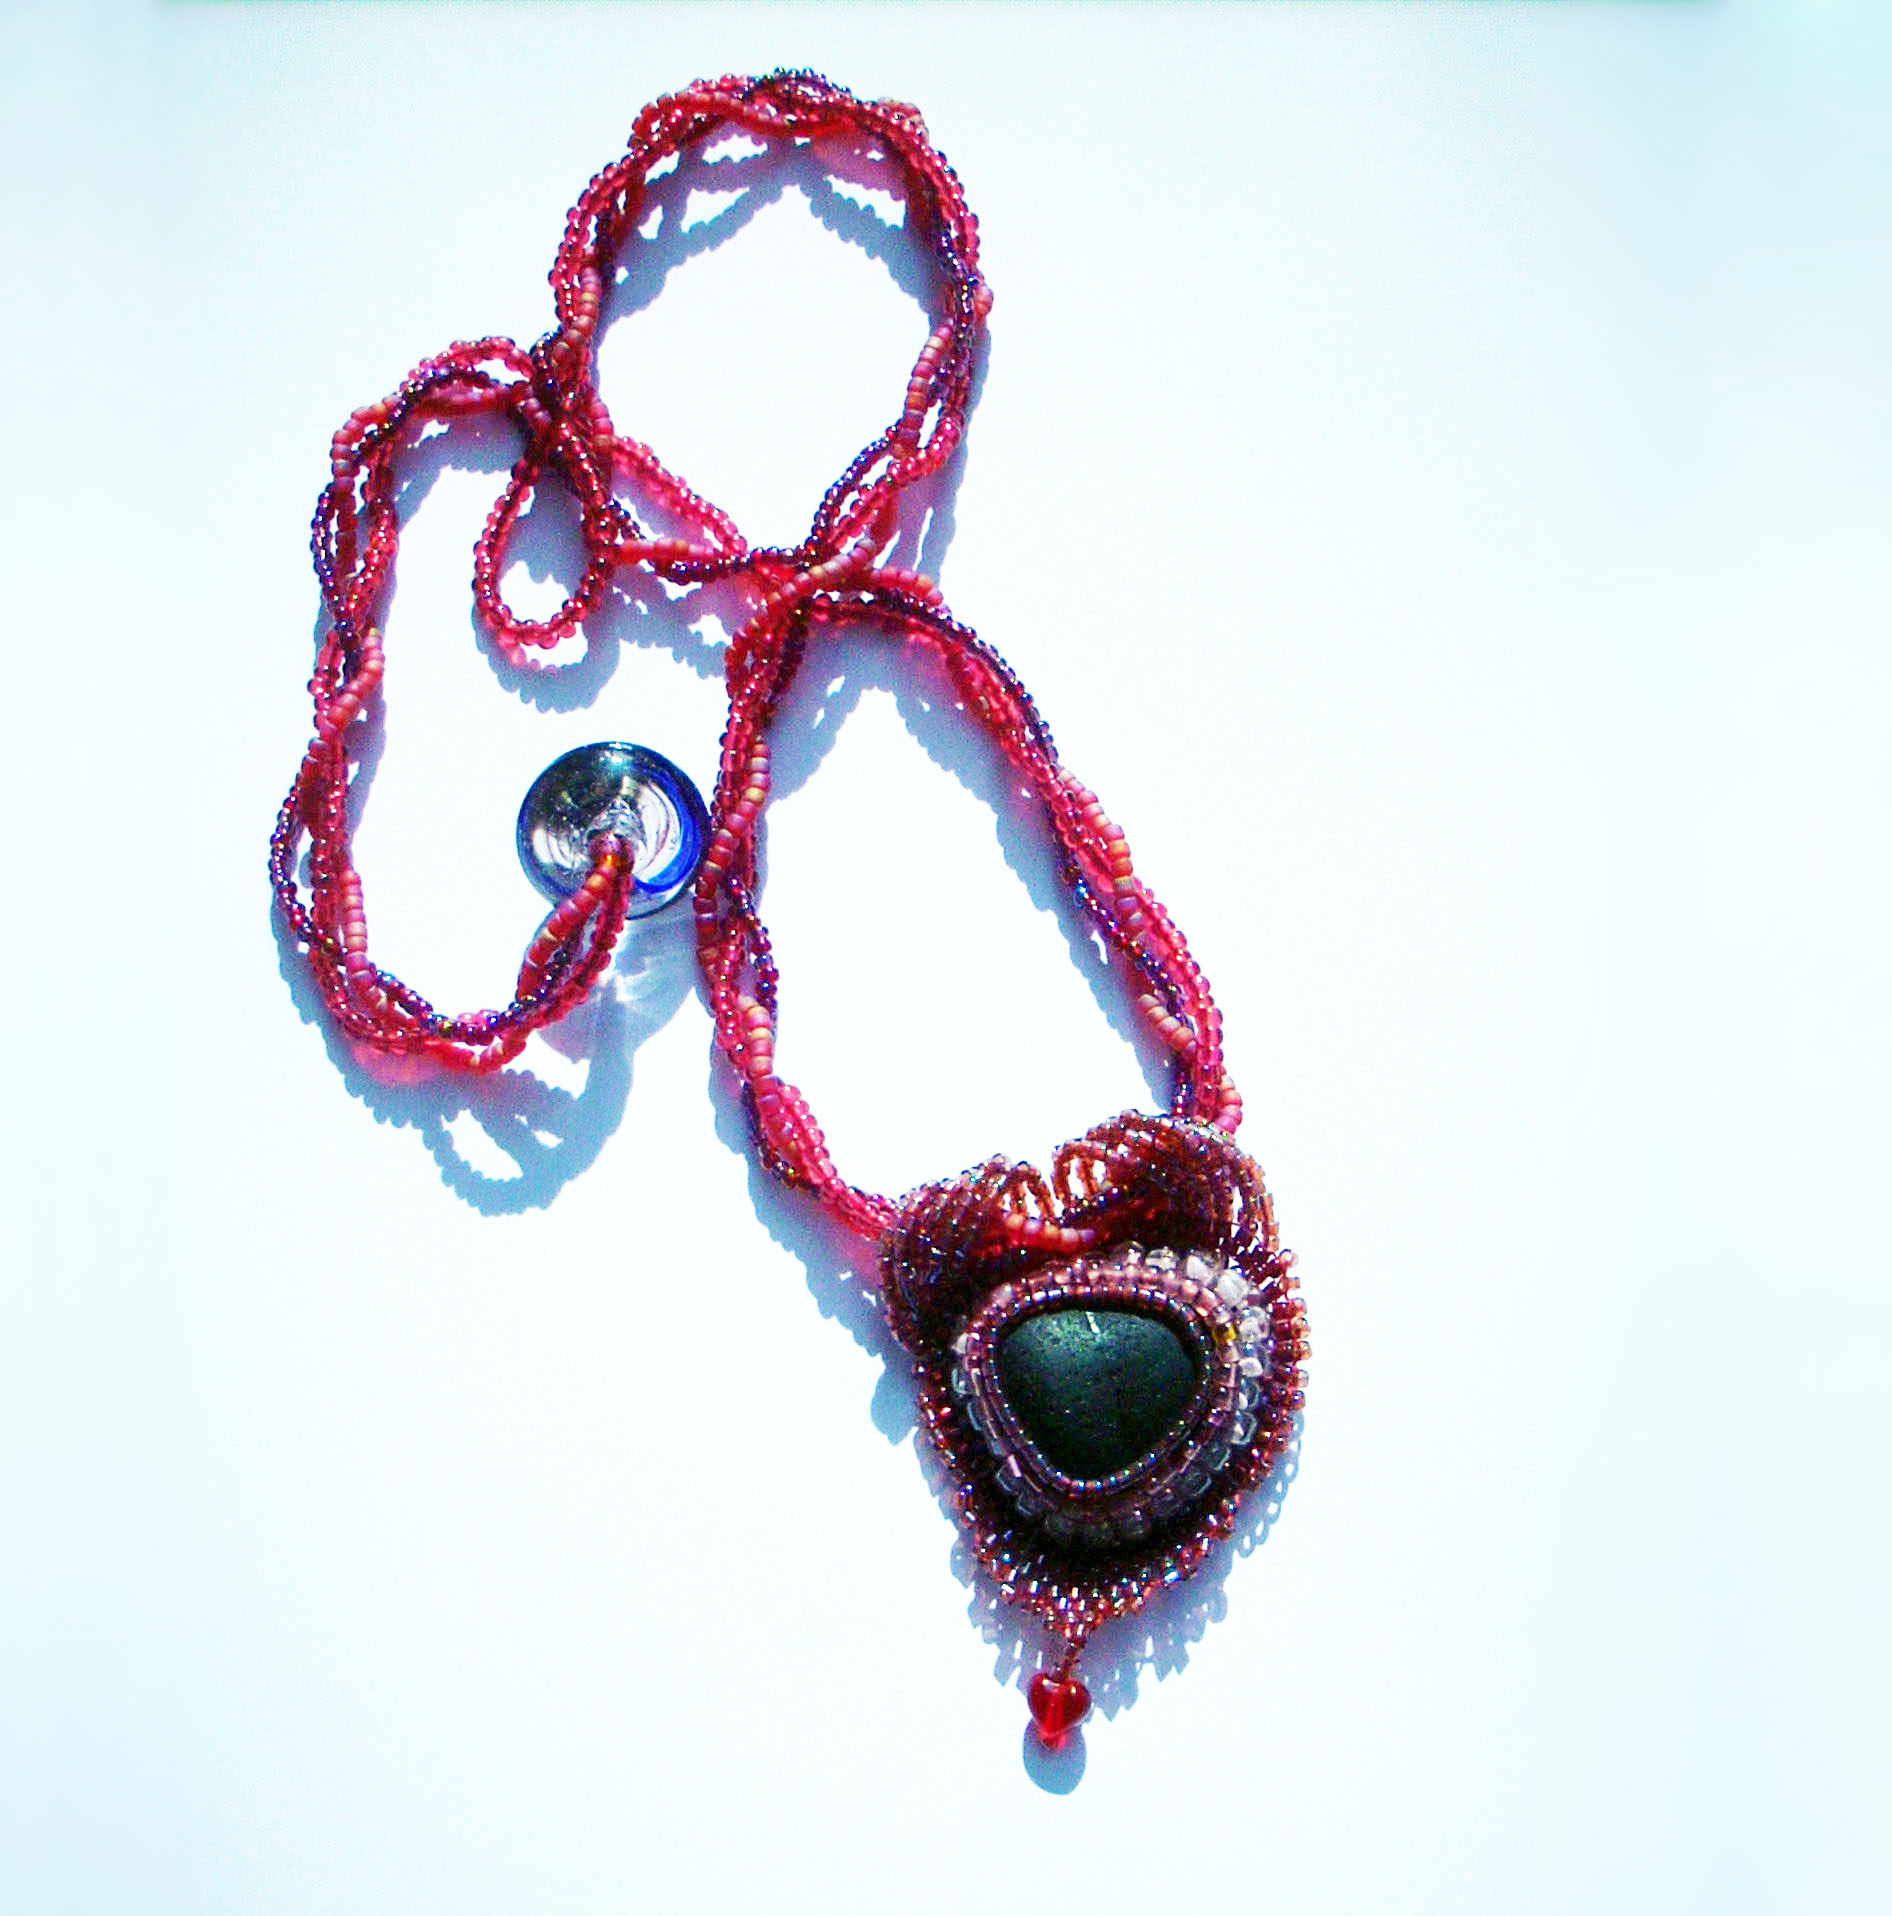 Baroque Red Heart Necklace